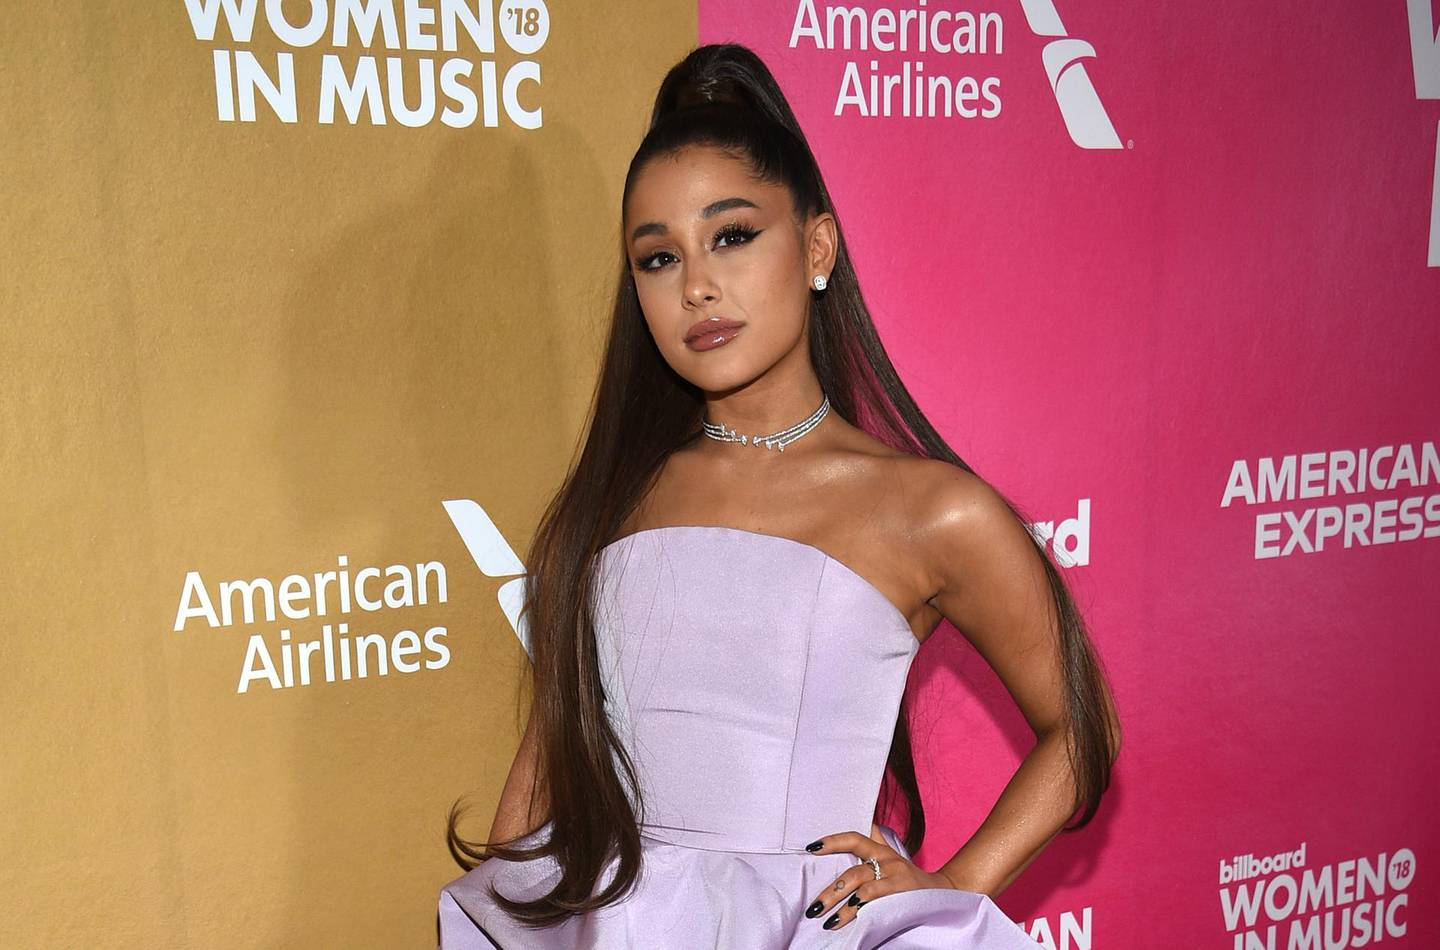 FILE - In a Thursday, Dec. 6, 2018 file photo, Ariana Grande attends the 13th annual Billboard Women in Music event at Pier 36, in New York.  Chinese tech giant Tencent is in talks with French media company Vivendi to buy 10% of Universal Music Group, whose artists include Ariana Grande, according to an announcement from Vivendi Tuesday Aug. 6, 2019.(Photo by Evan Agostini/Invision/AP, File)